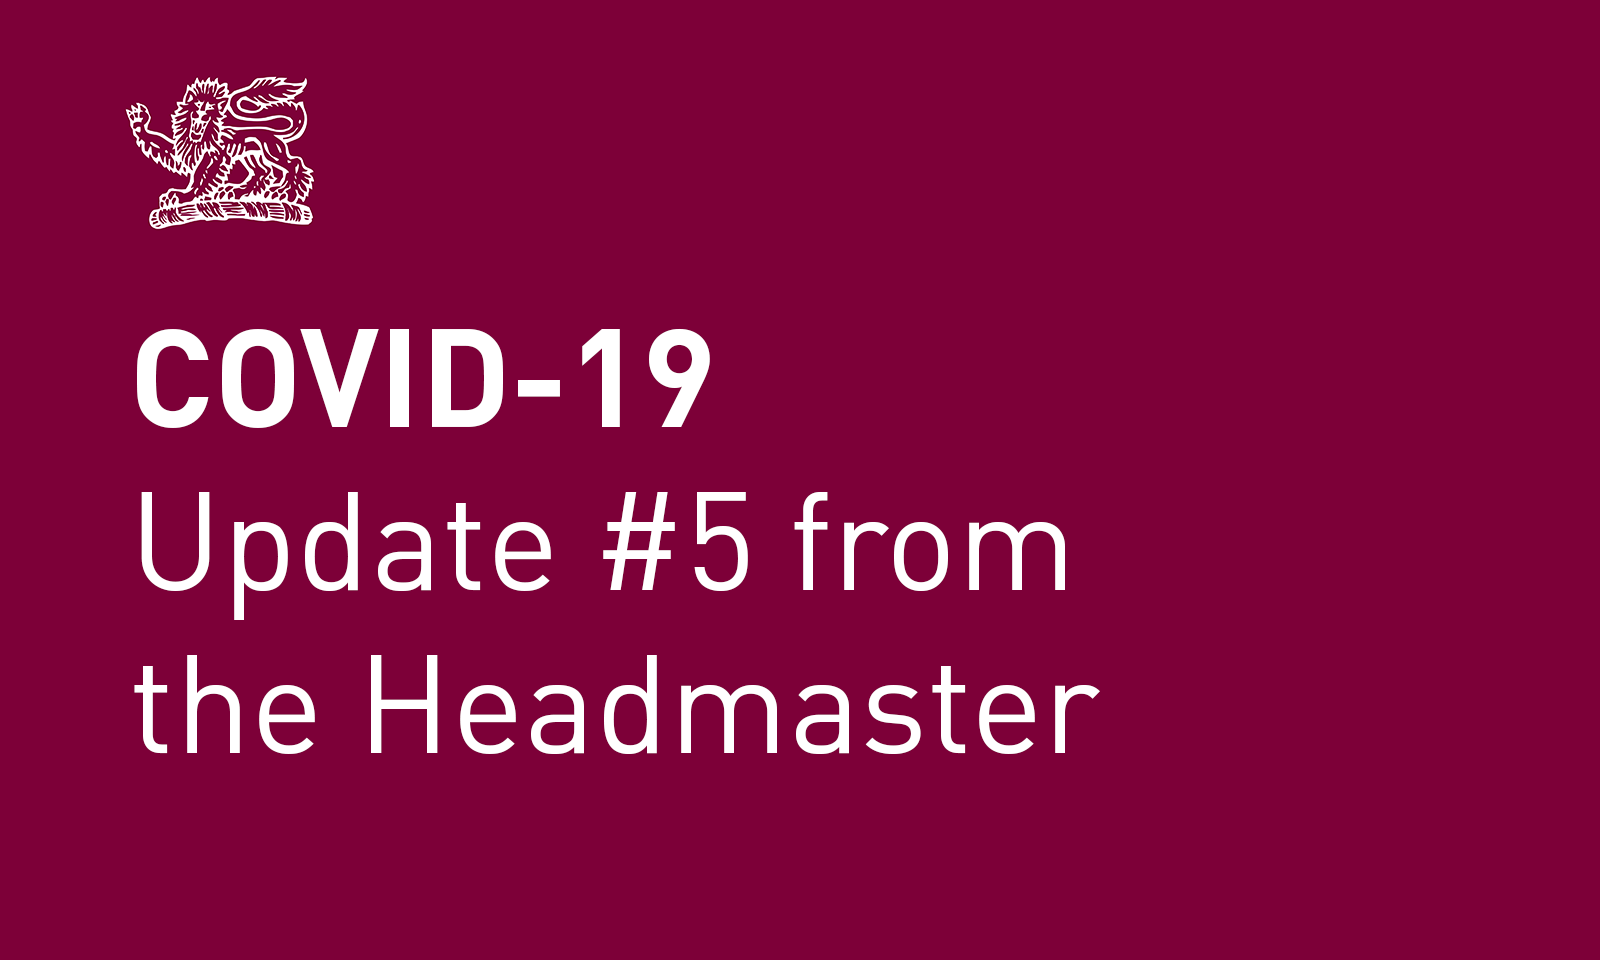 Coronavirus (COVID-19) update #5 from the Headmaster